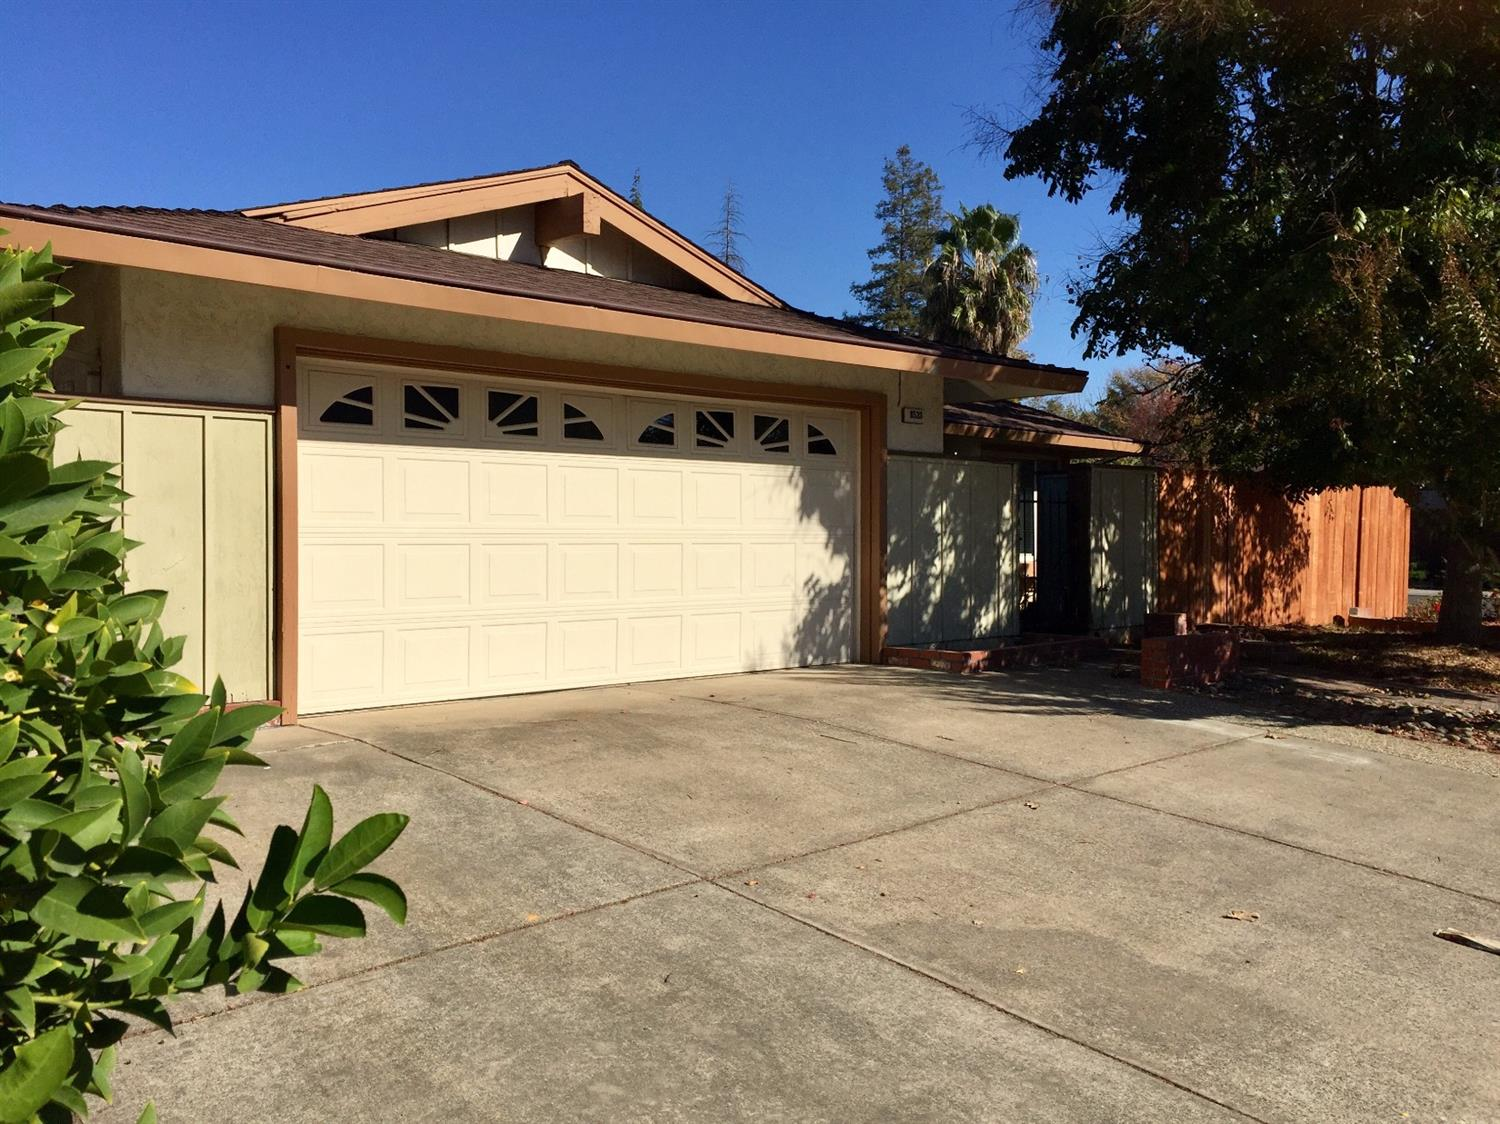 Real Estate Construction : Point real estate construction inc in elk grove ca